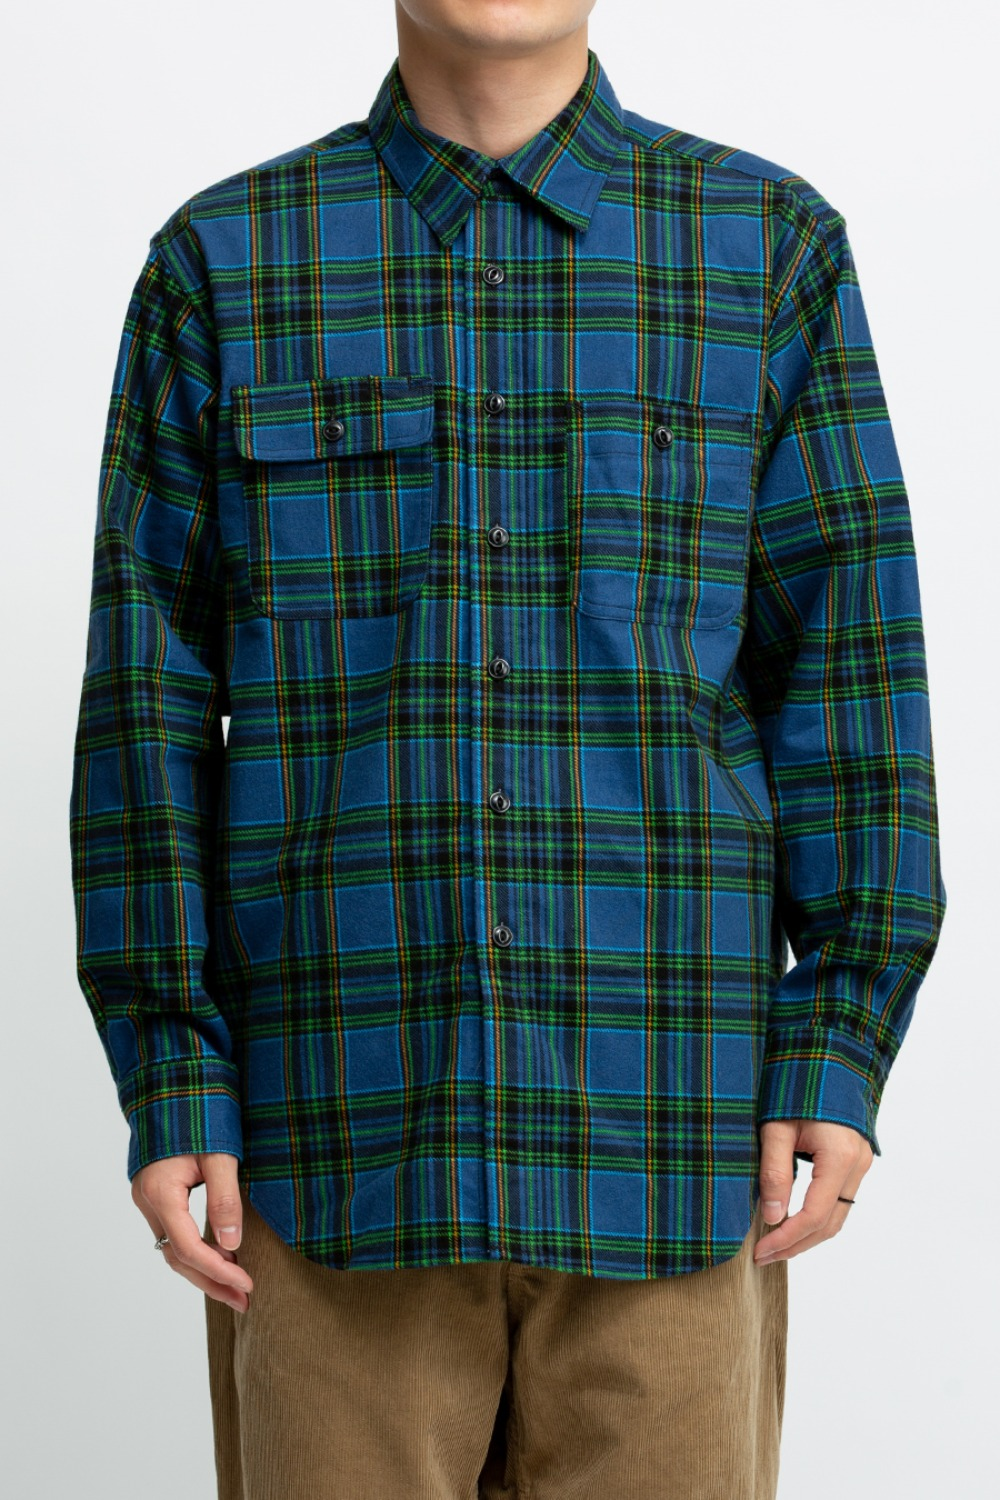 UTILITY SHIRT NAVY GREEN COTTON BRUSHED PLAID